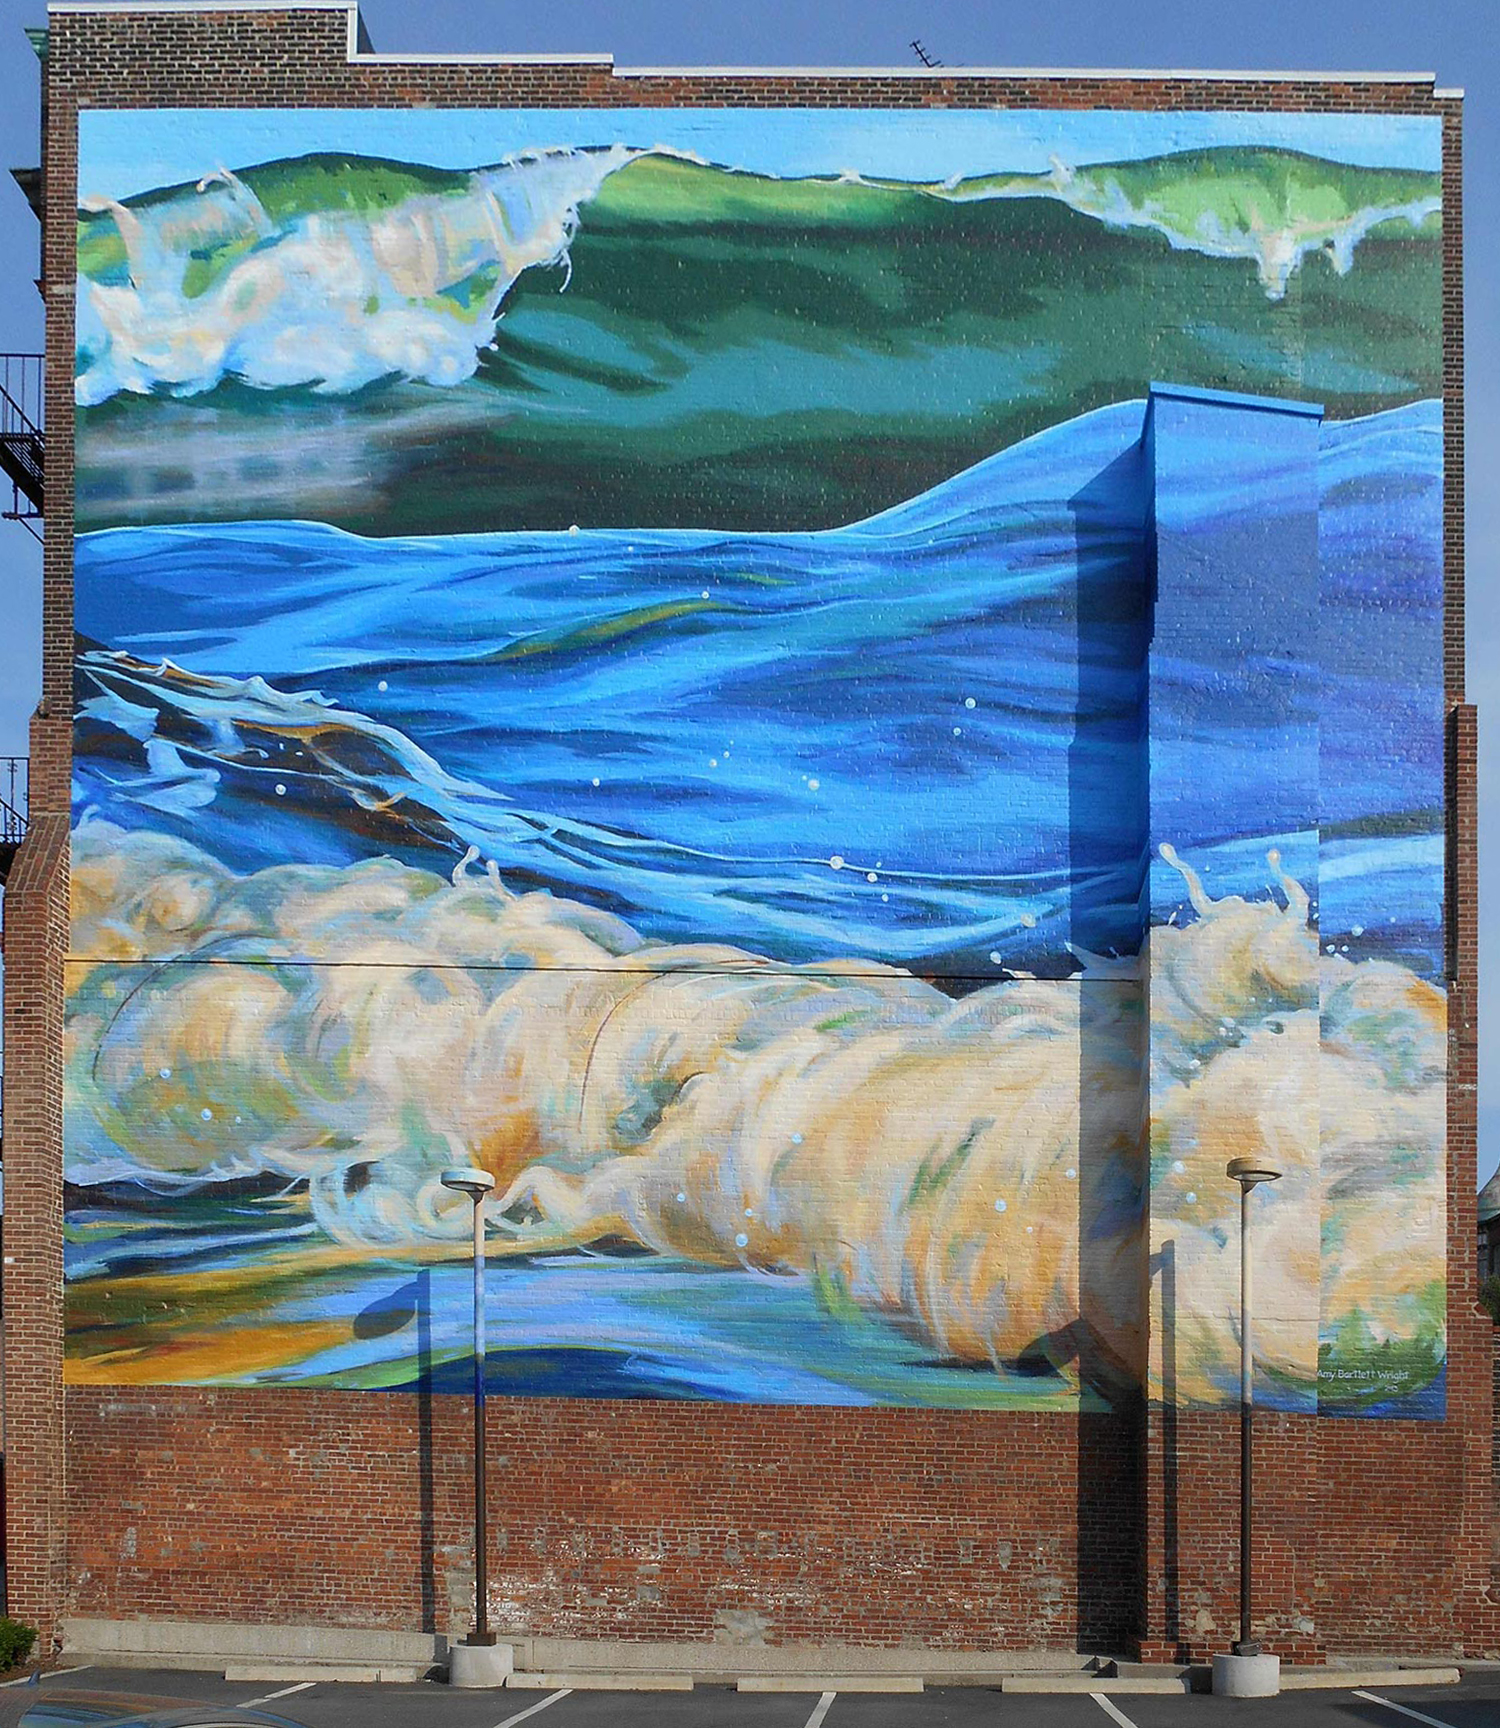 mural showing three ocean waves painted on a brick wall